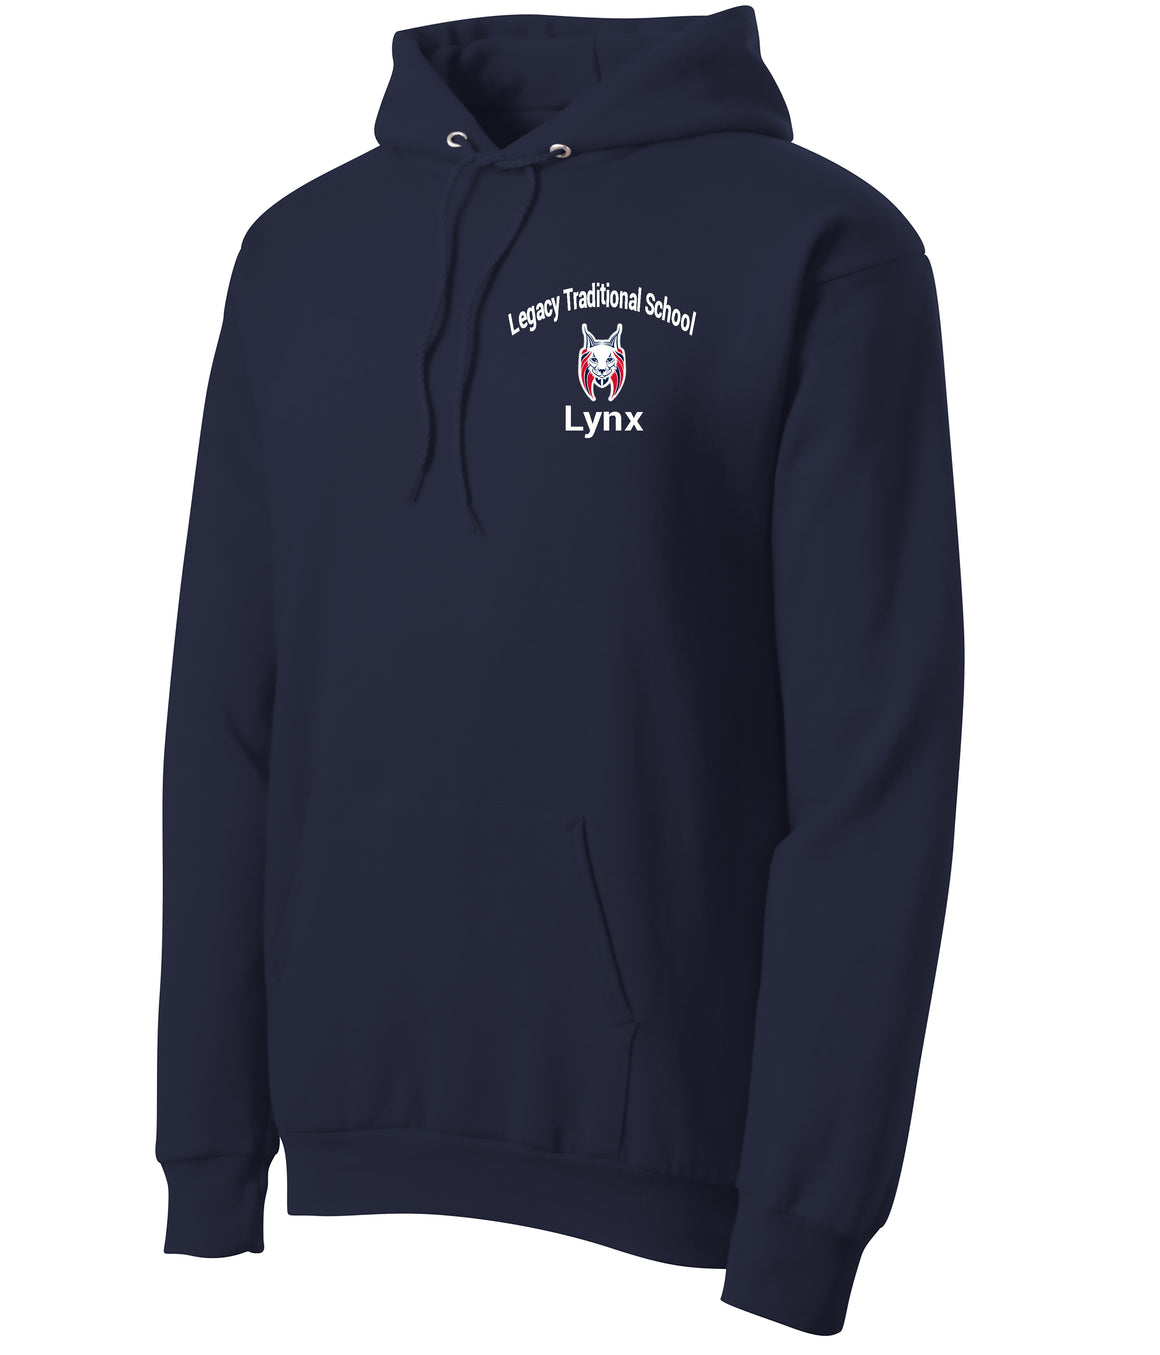 Legacy Traditional School Avondale - Hoodies